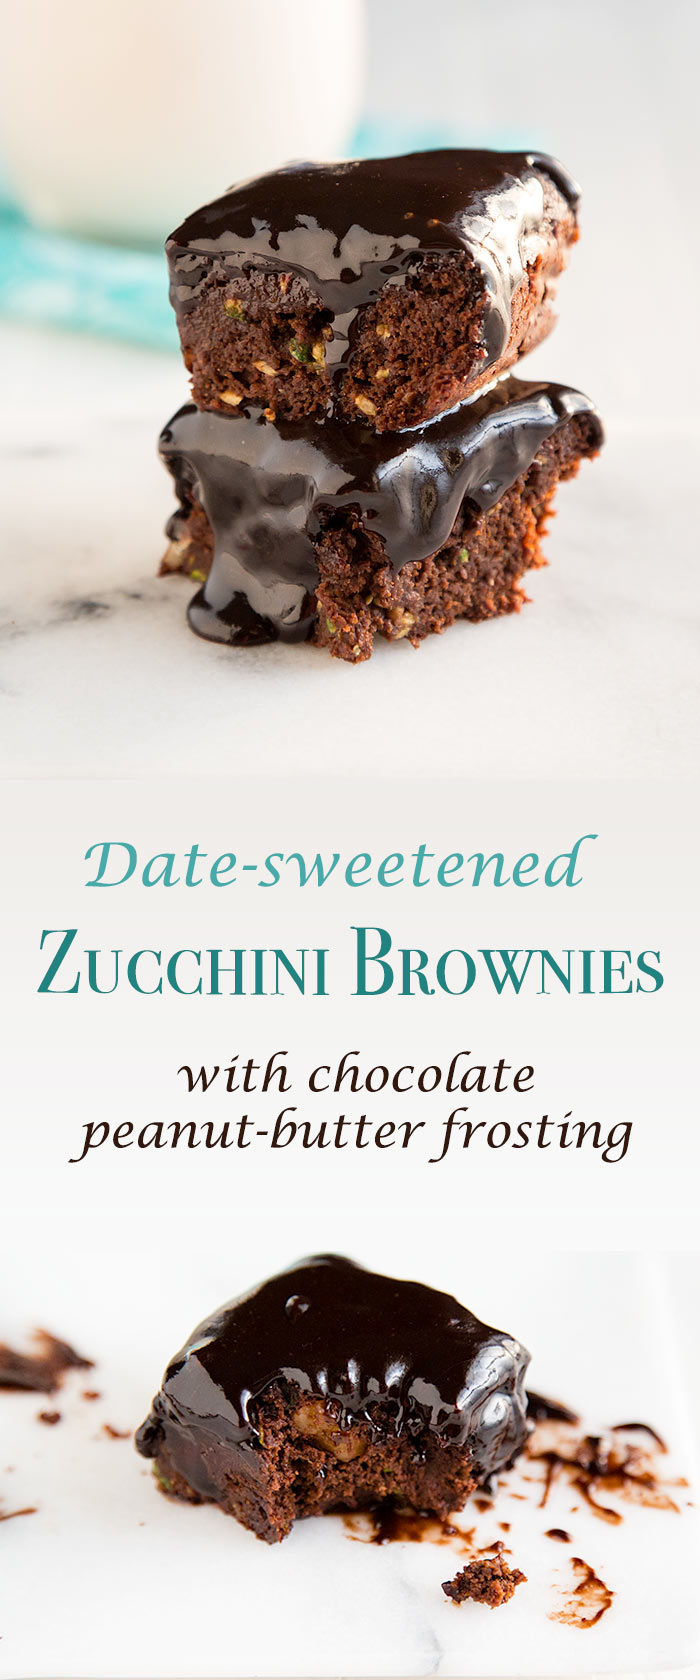 These vegan zucchini brownies are low in sugar and fat, but the decadent chocolate-peanut frosting makes them taste rich and fudgy. #vegan #wfpb